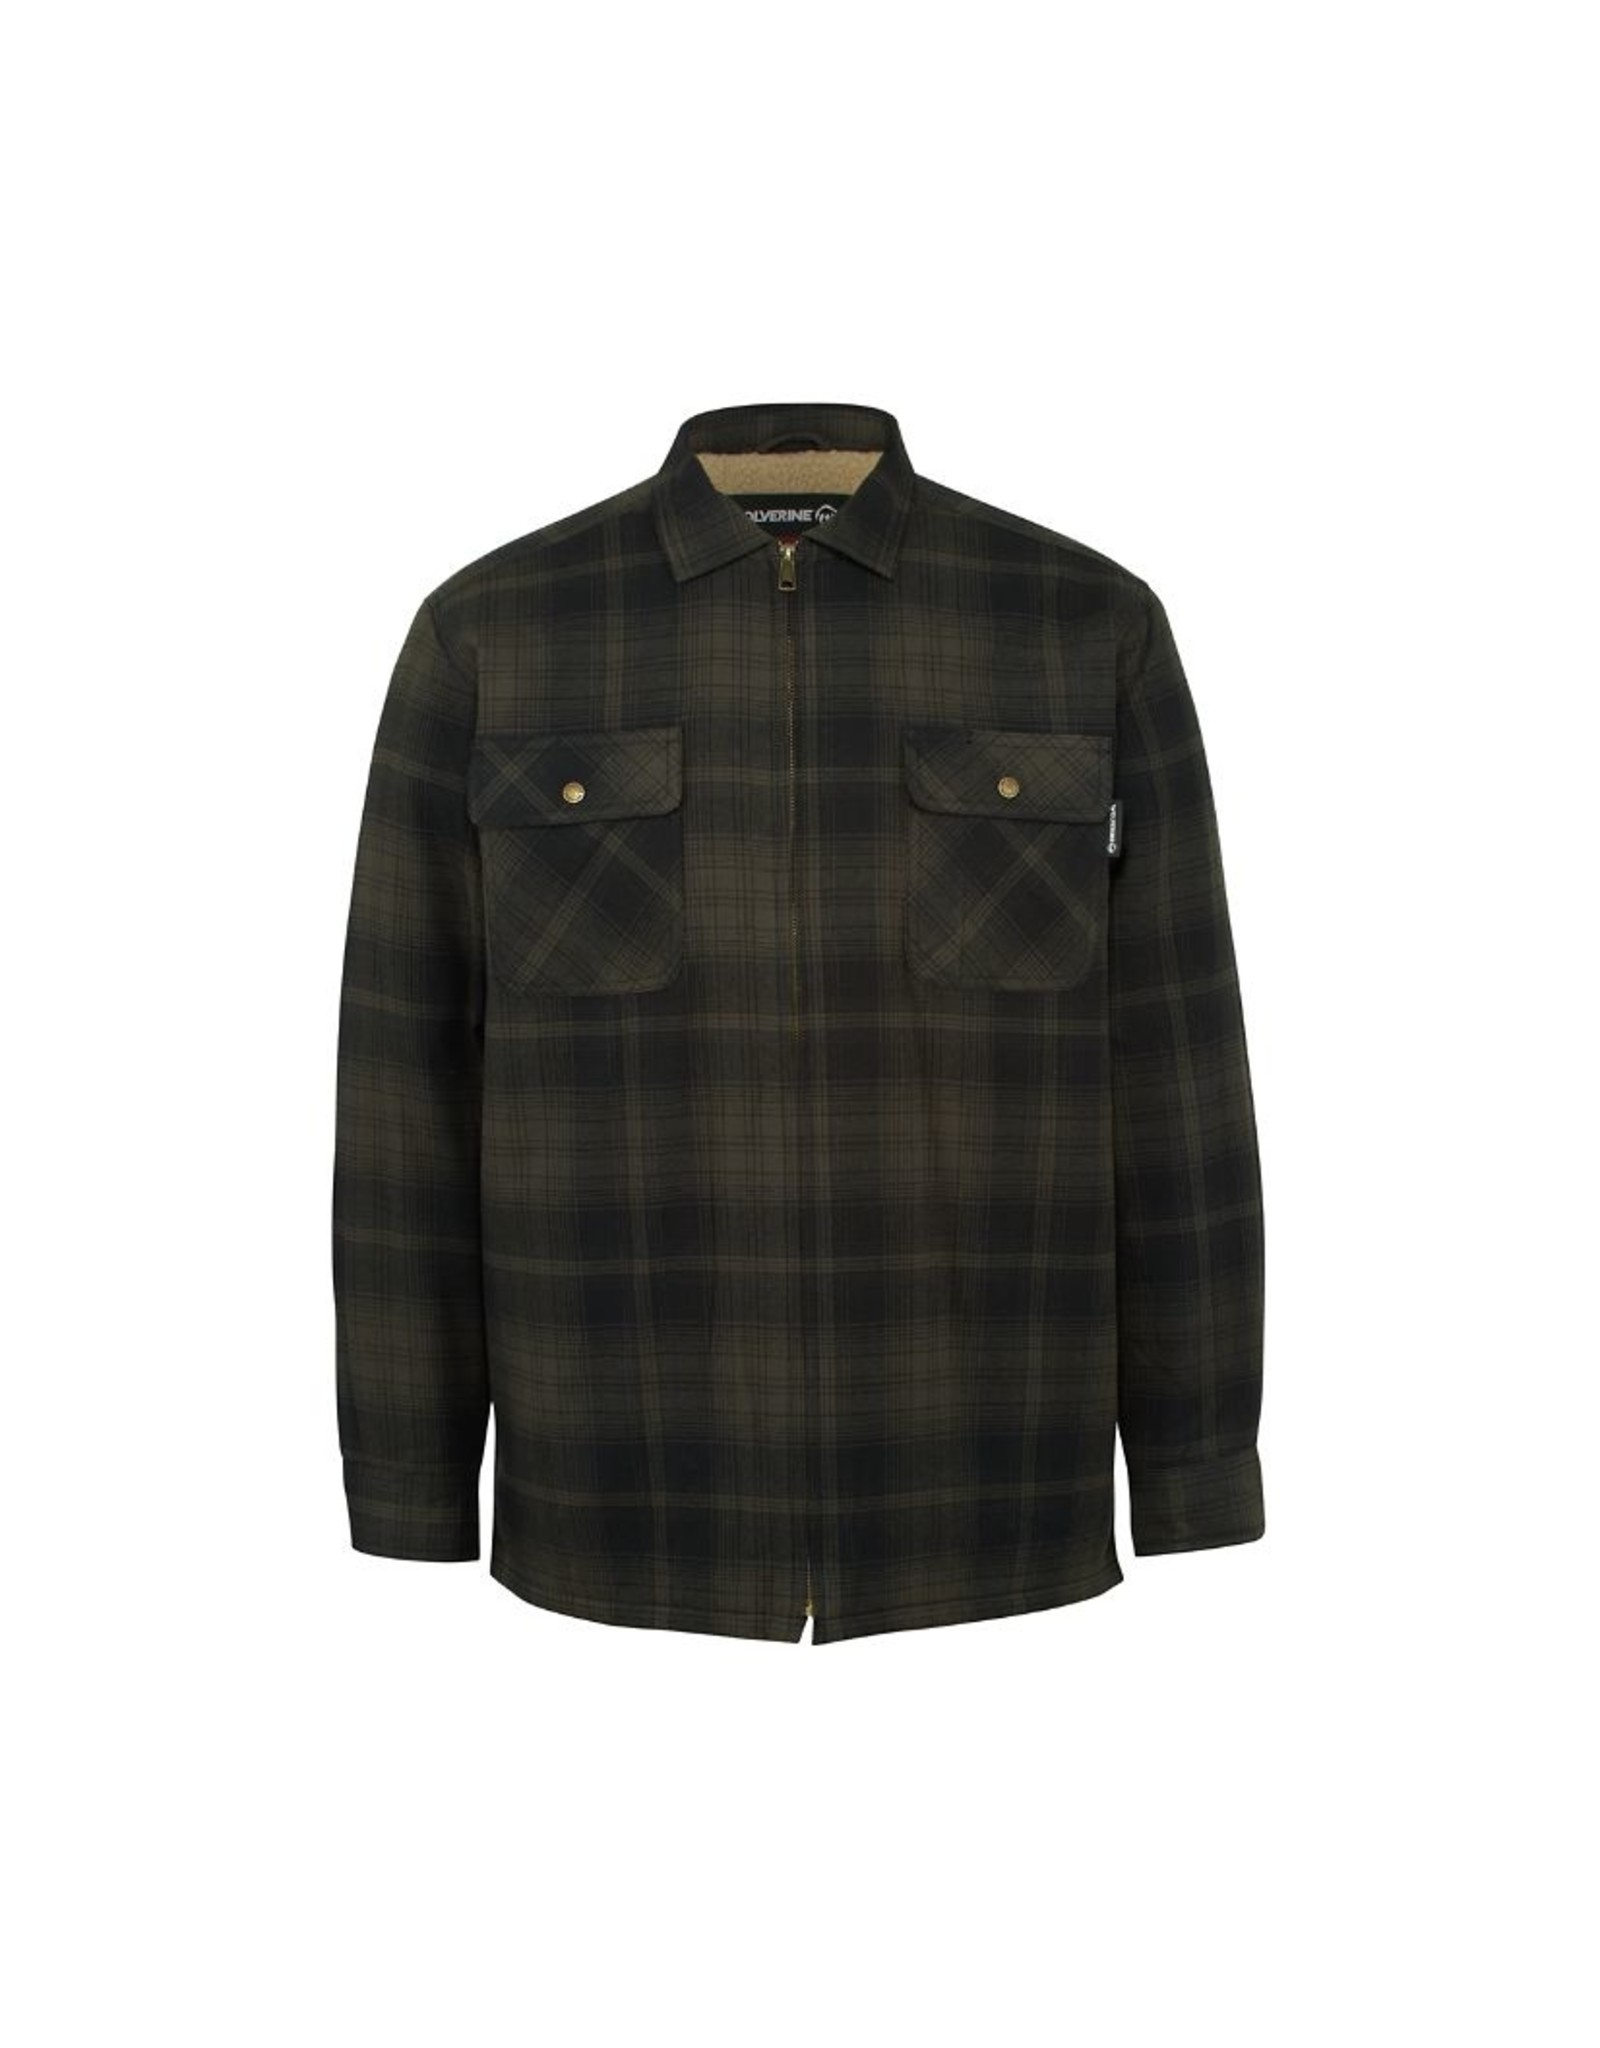 WOLVERINE MARSHALL JACKET